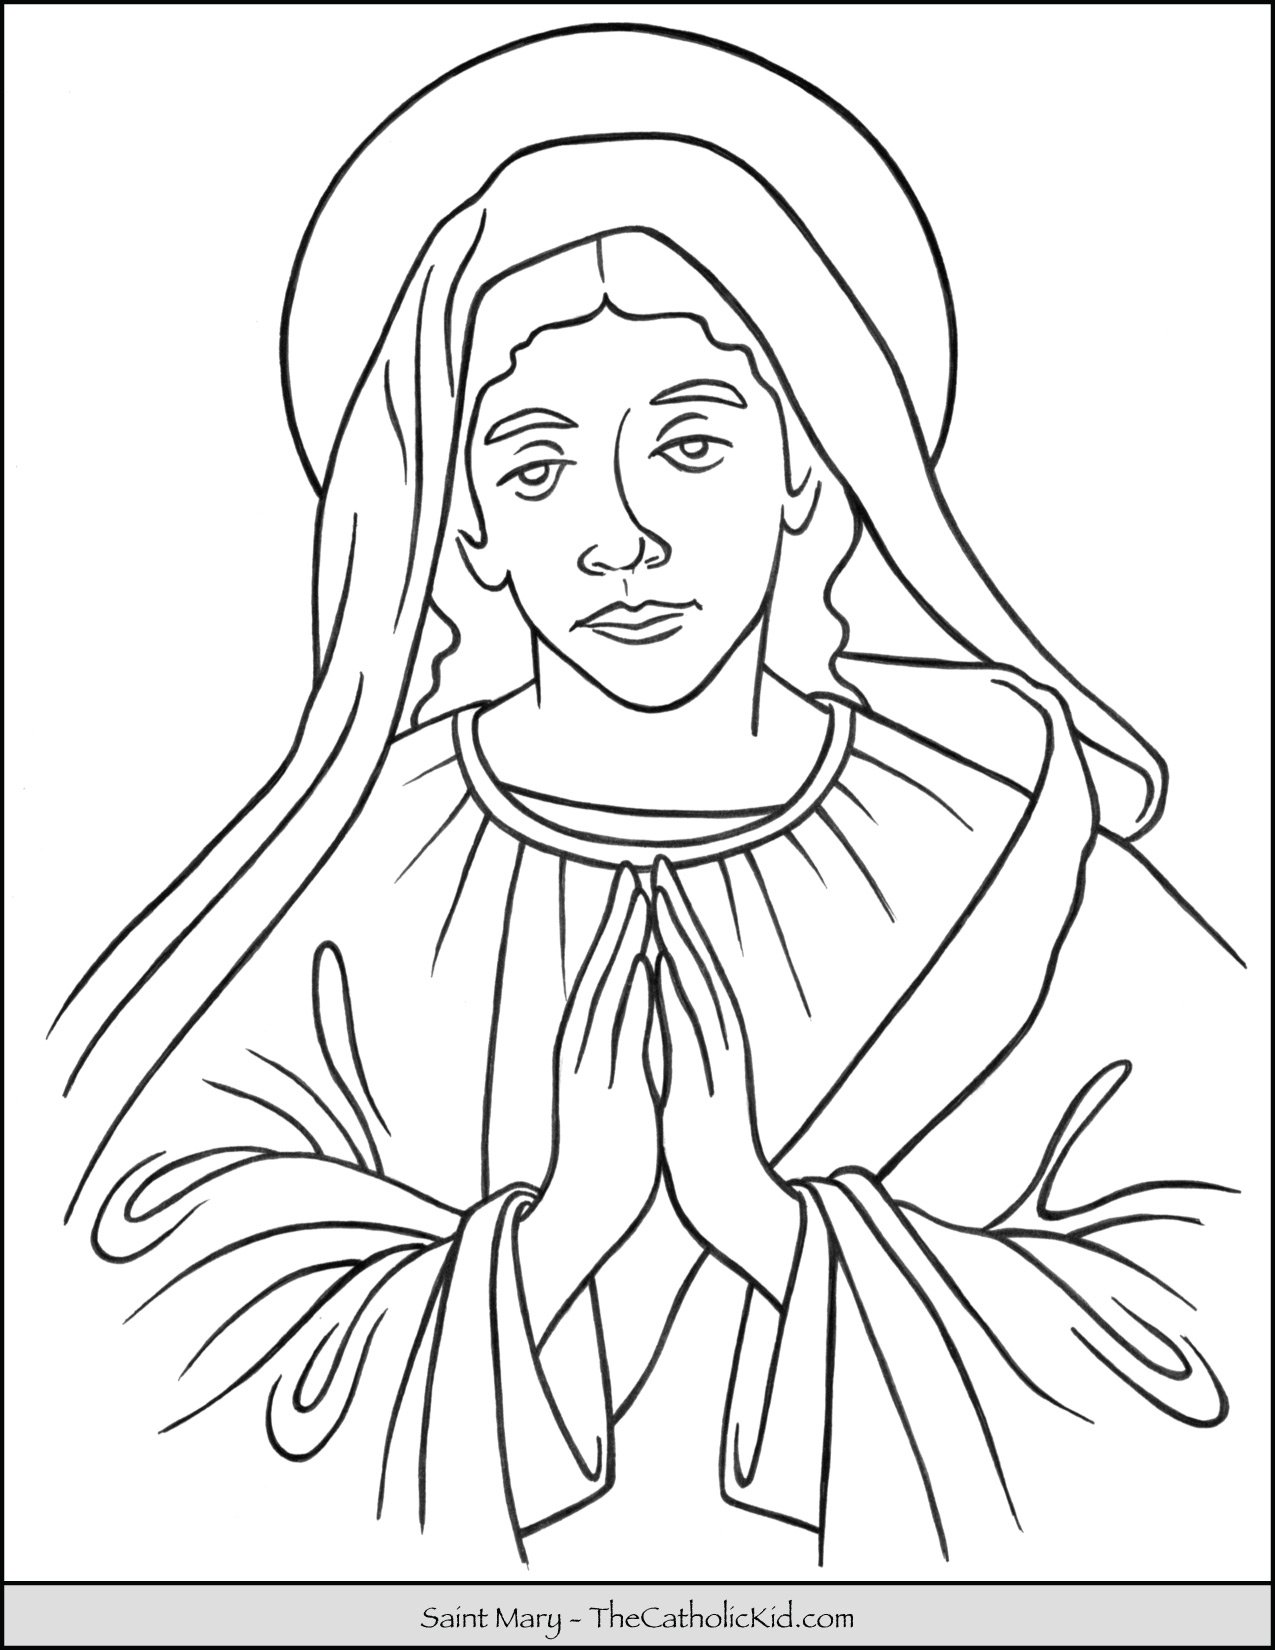 Saint Mary Coloring Page Thecatholickid Com